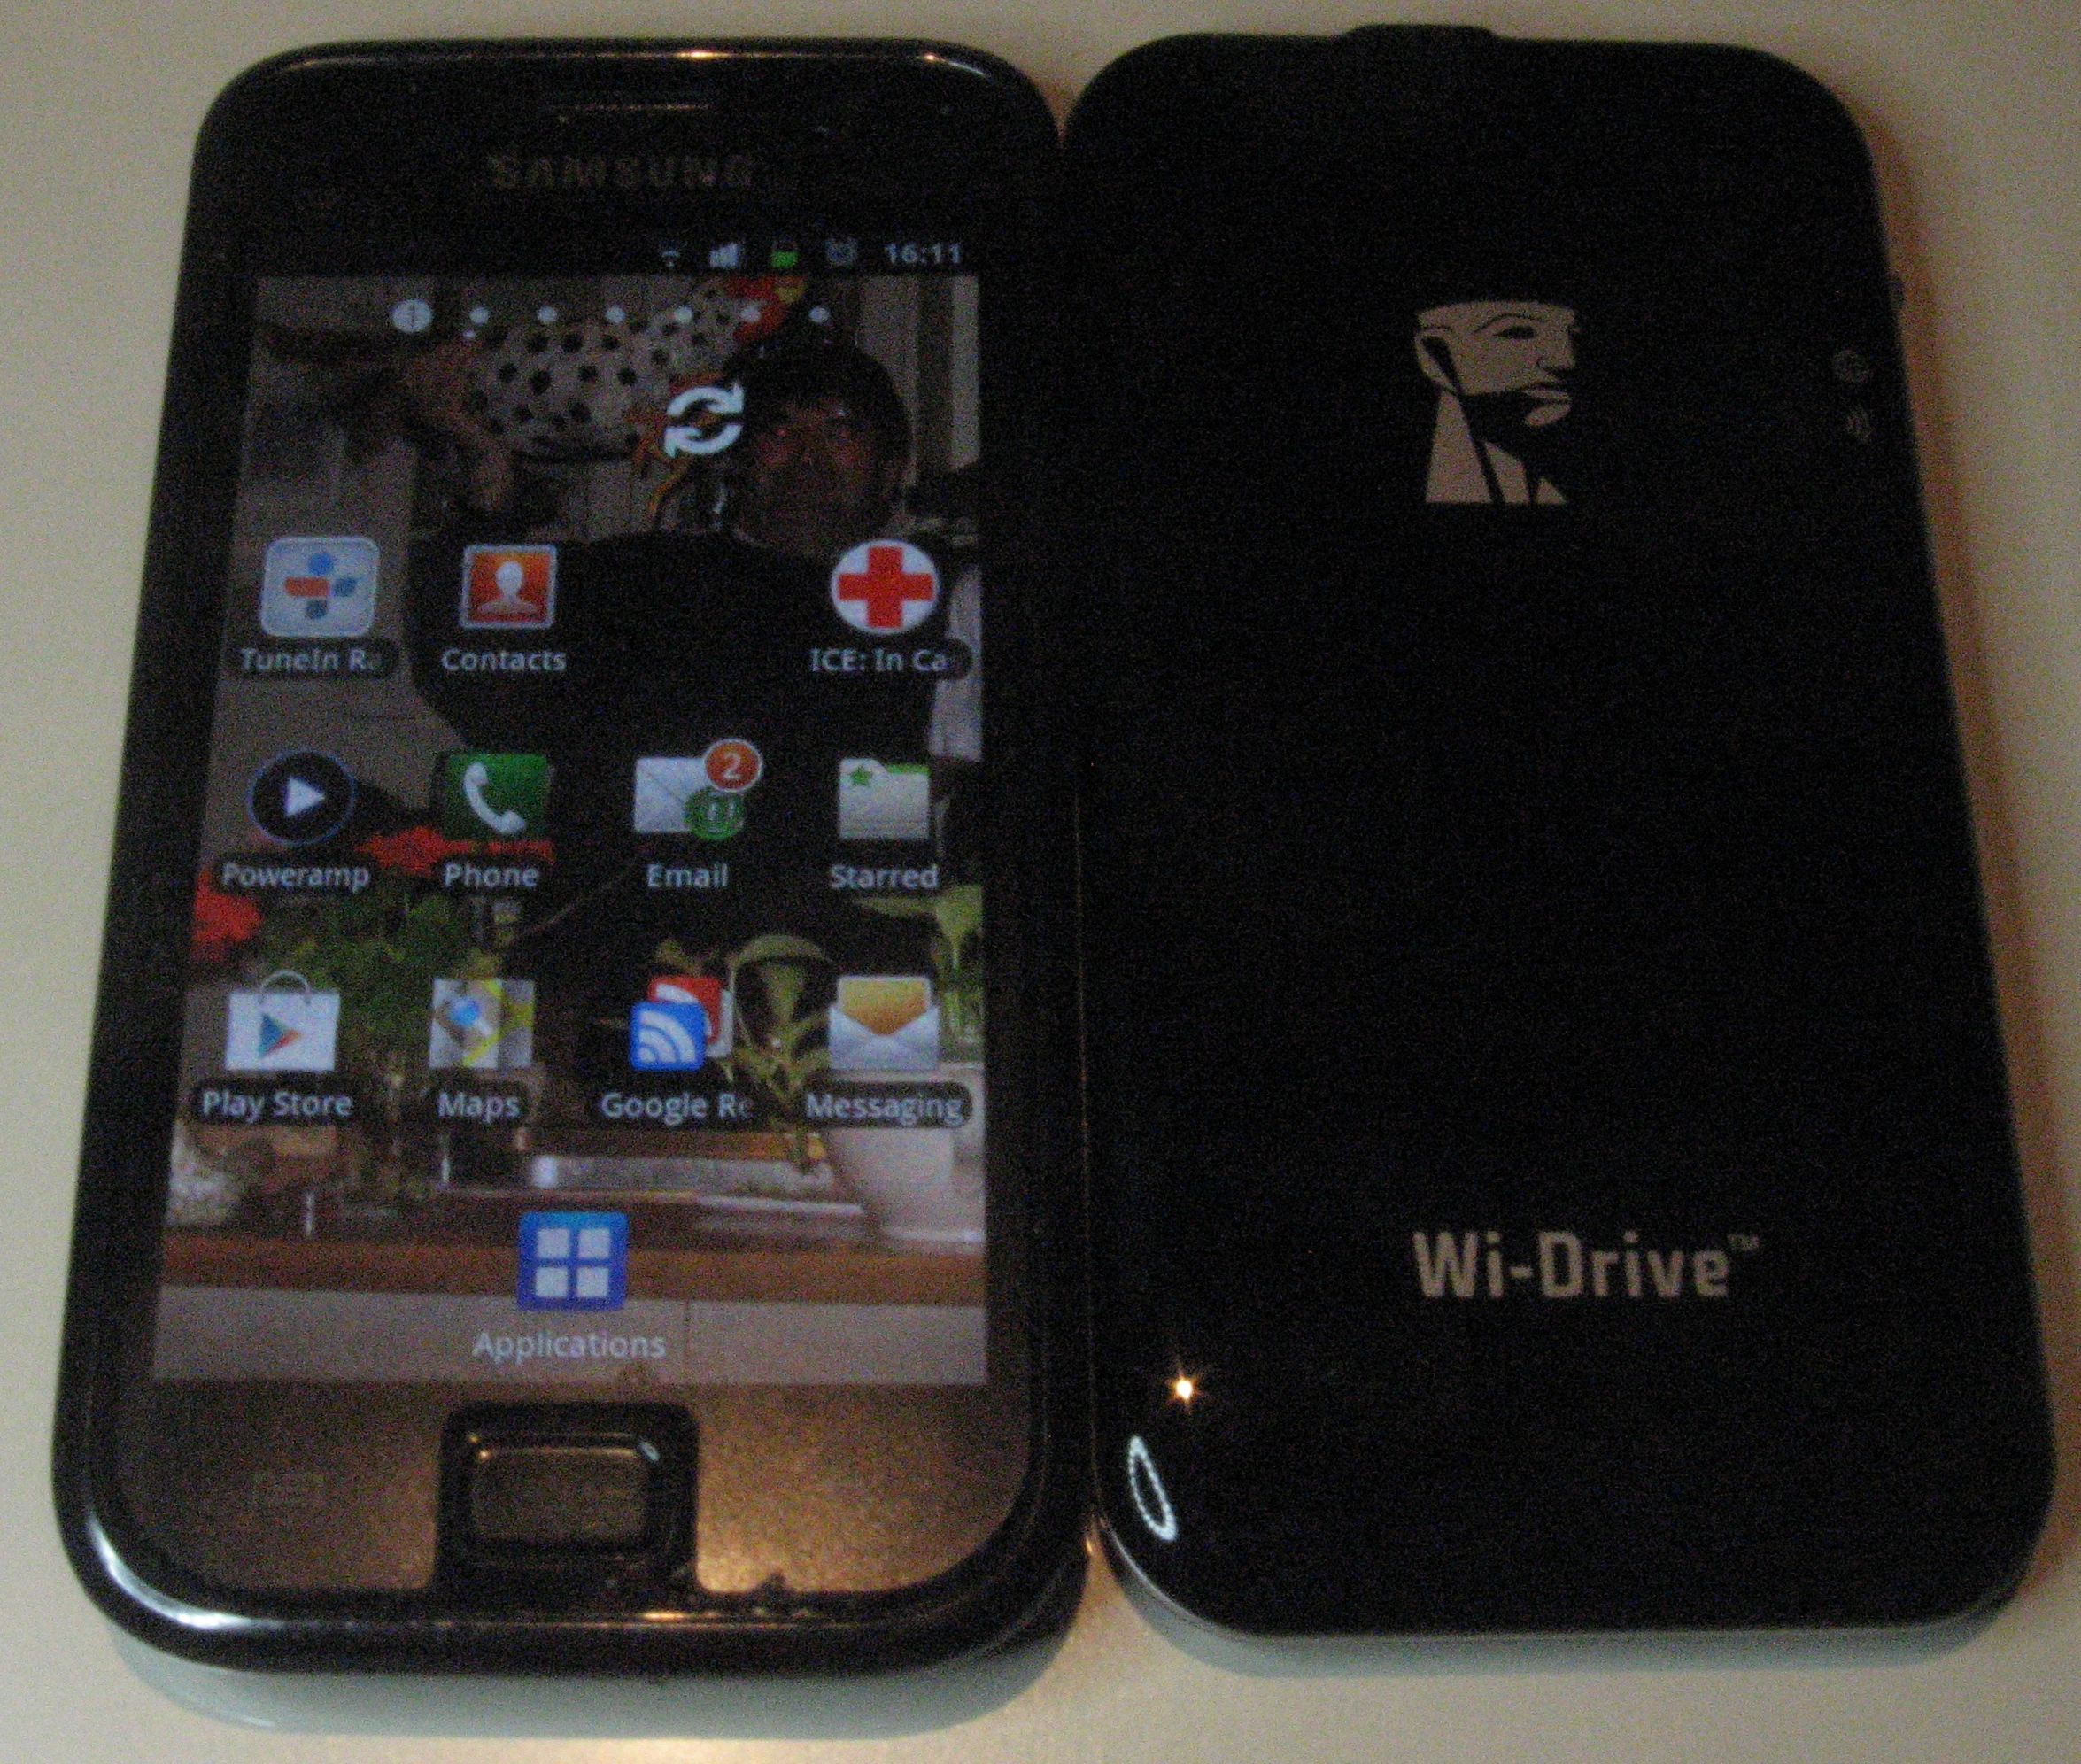 Kingston Wi-Drive and Android smartphone